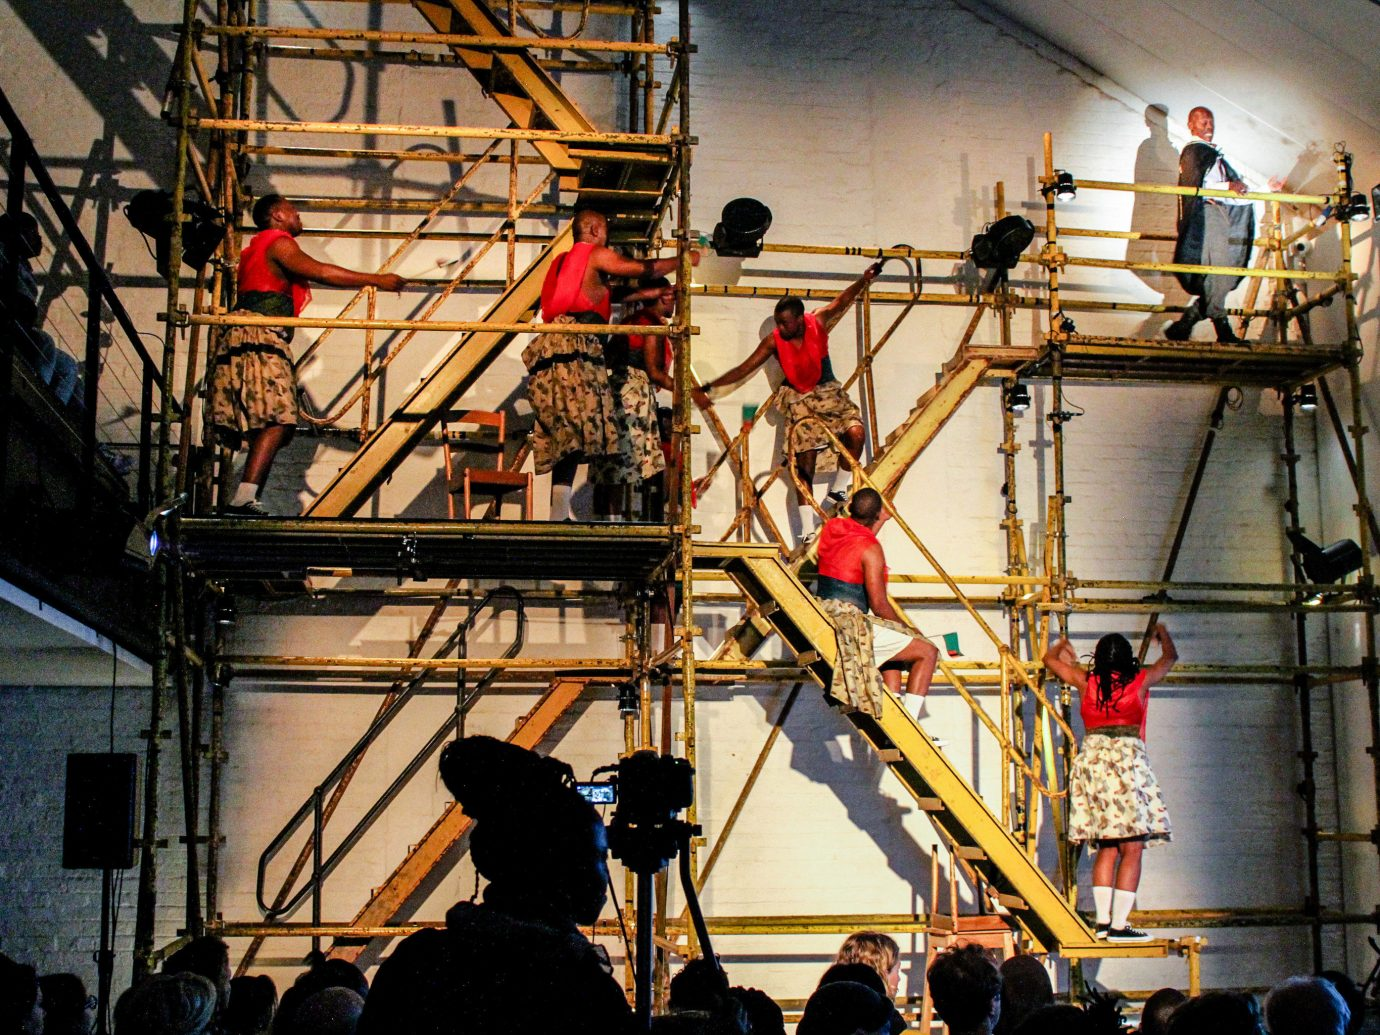 Arts + Culture Trip Ideas indoor structure Entertainment tourist attraction electricity performing arts electrical supply recreation scaffolding building stage event